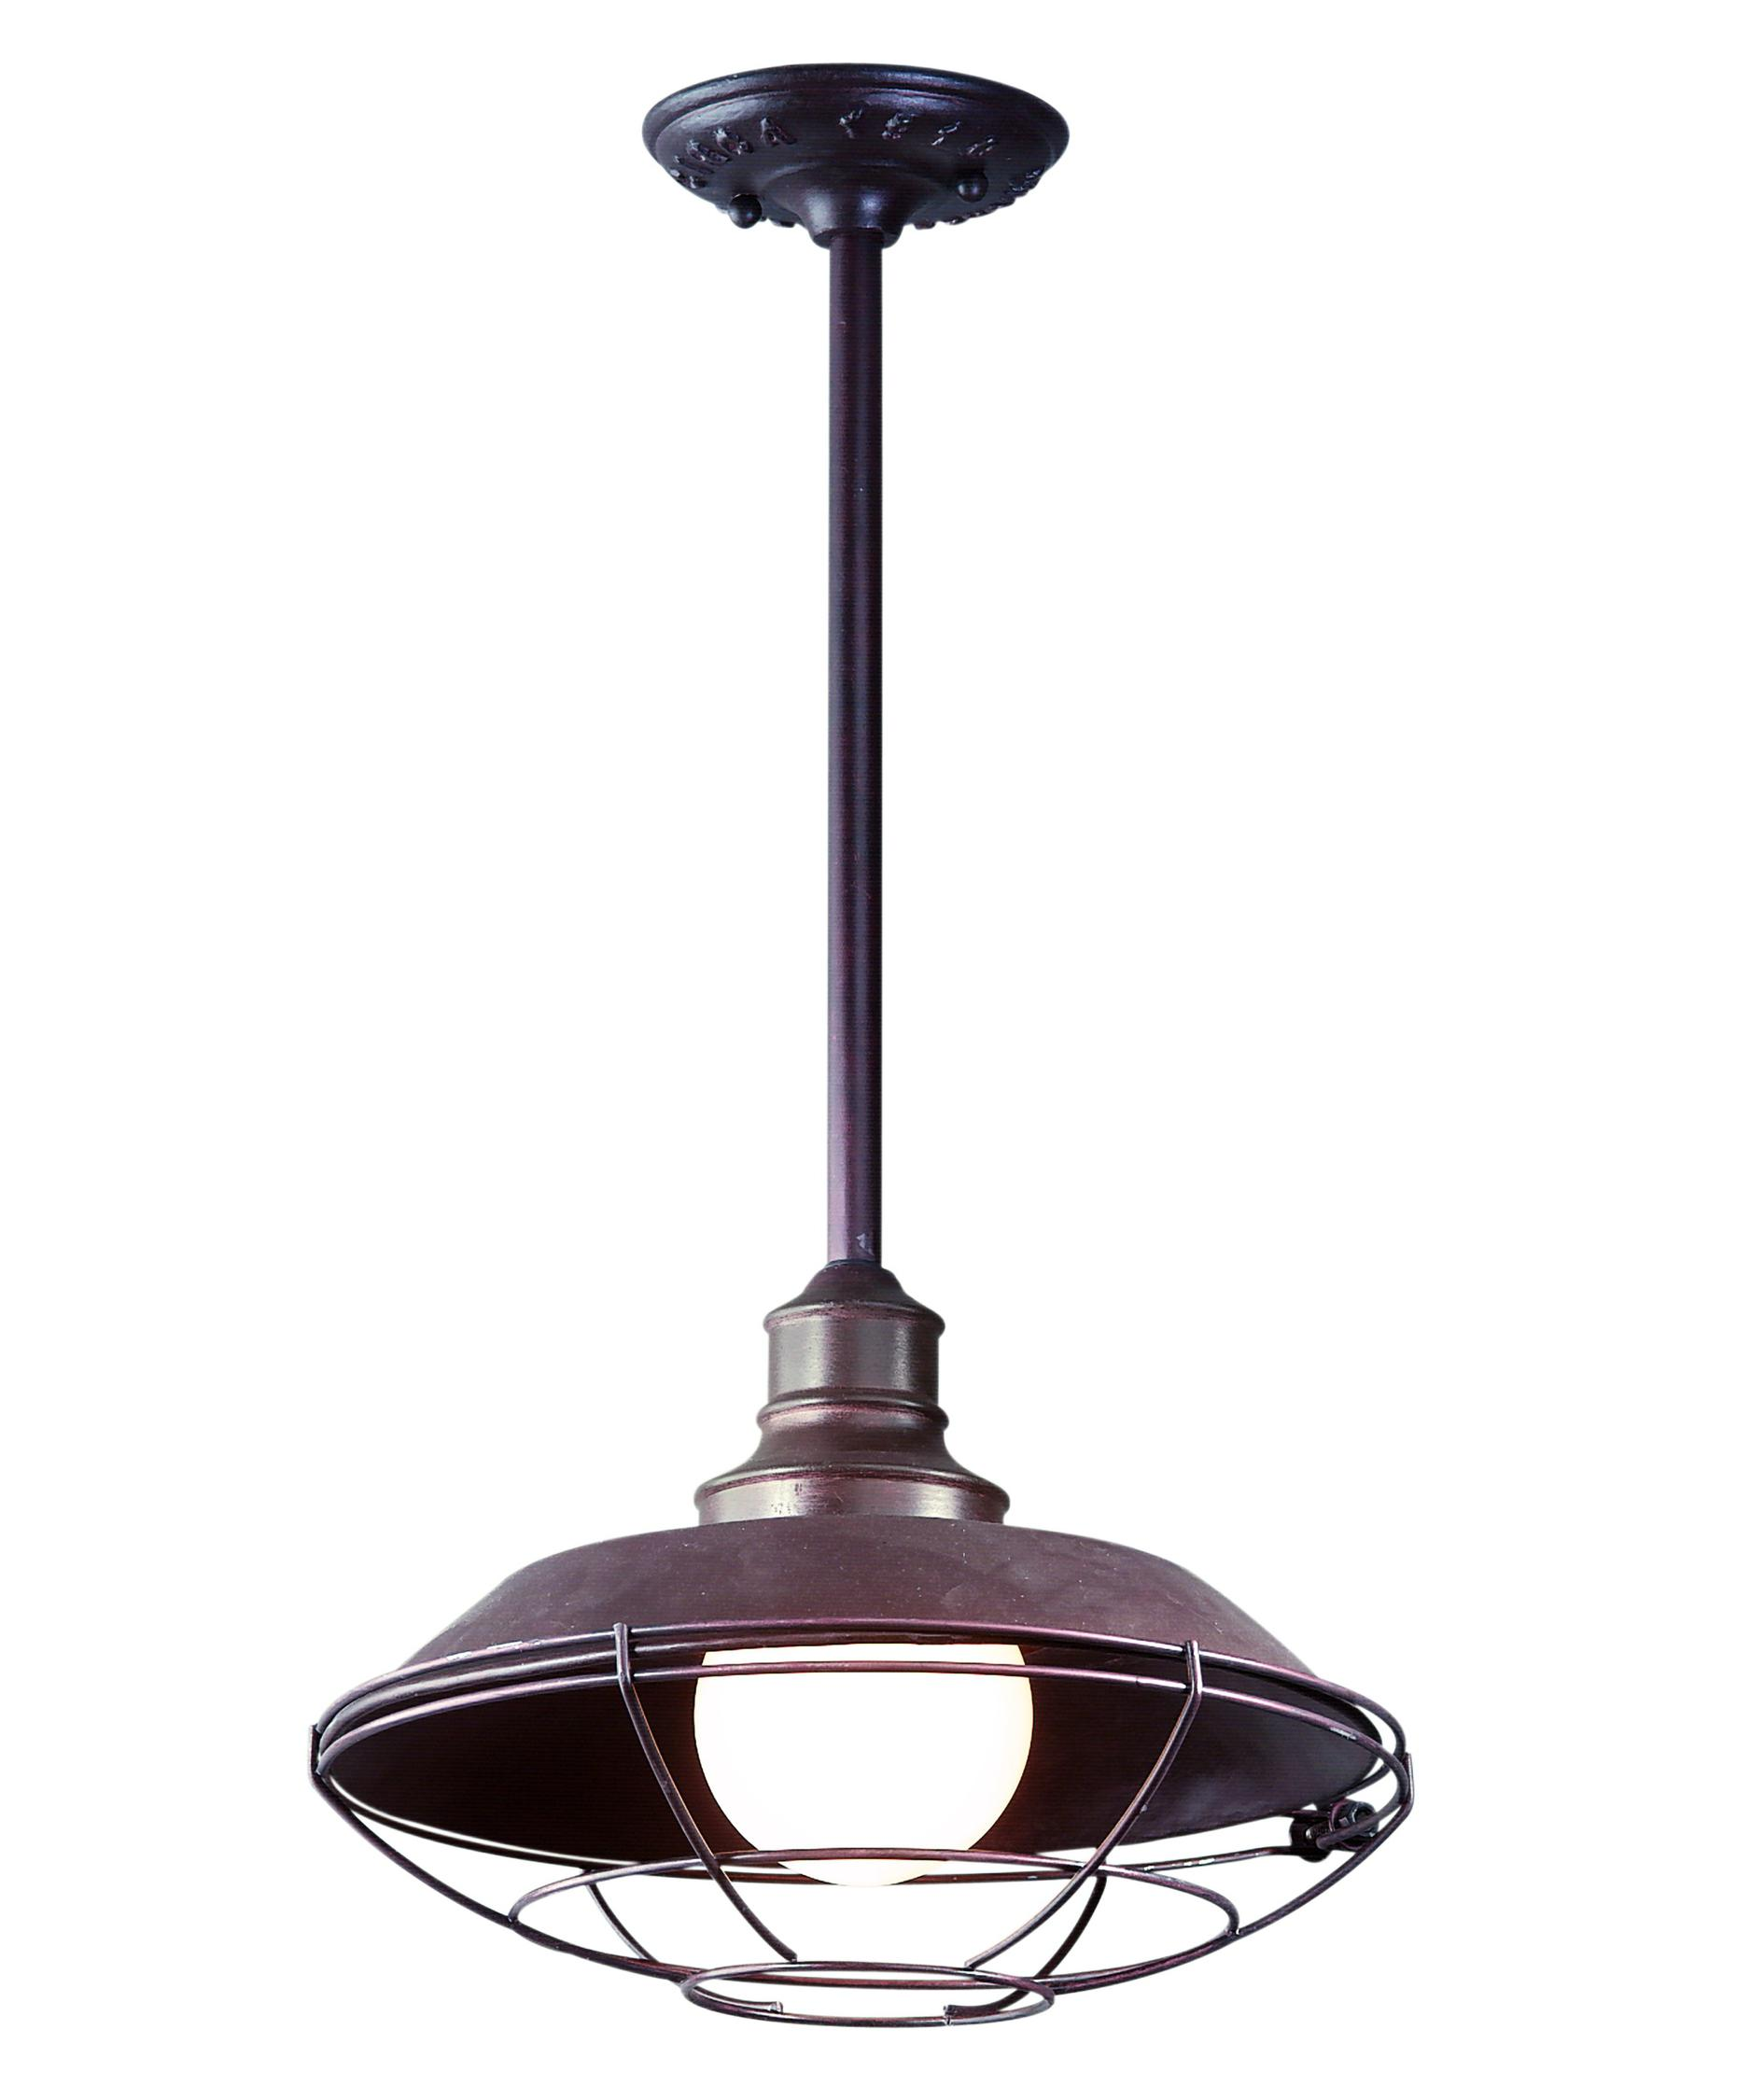 Troy Lighting F9273 Circa 1910 12 Inch Wide 1 Light Outdoor ...